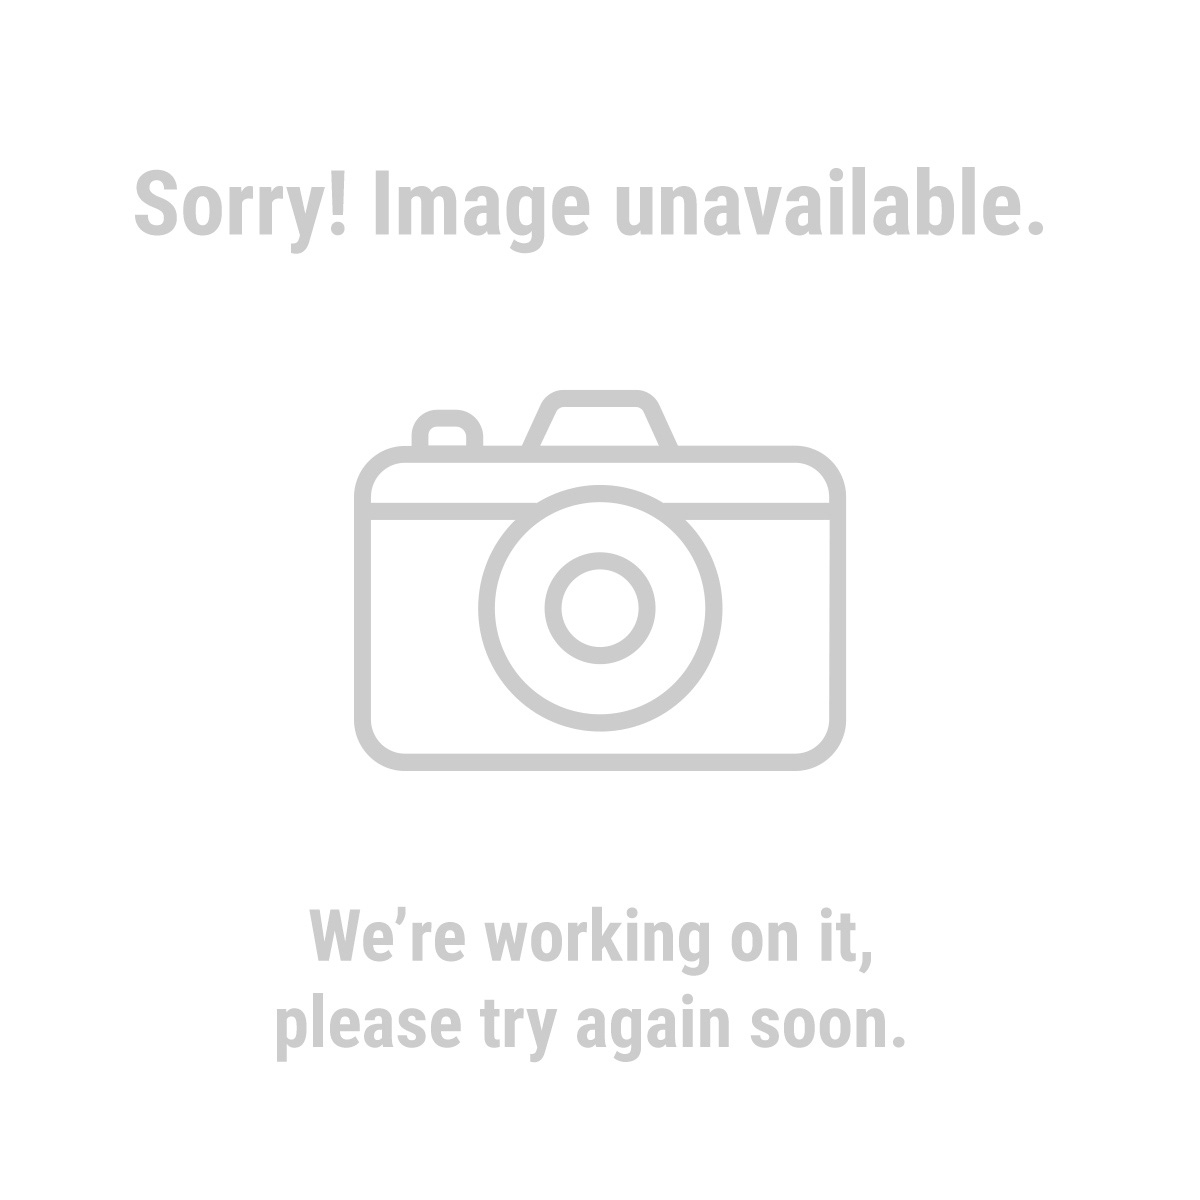 "Cen-Tech 66712 36"" Low Voltage Test Leads"